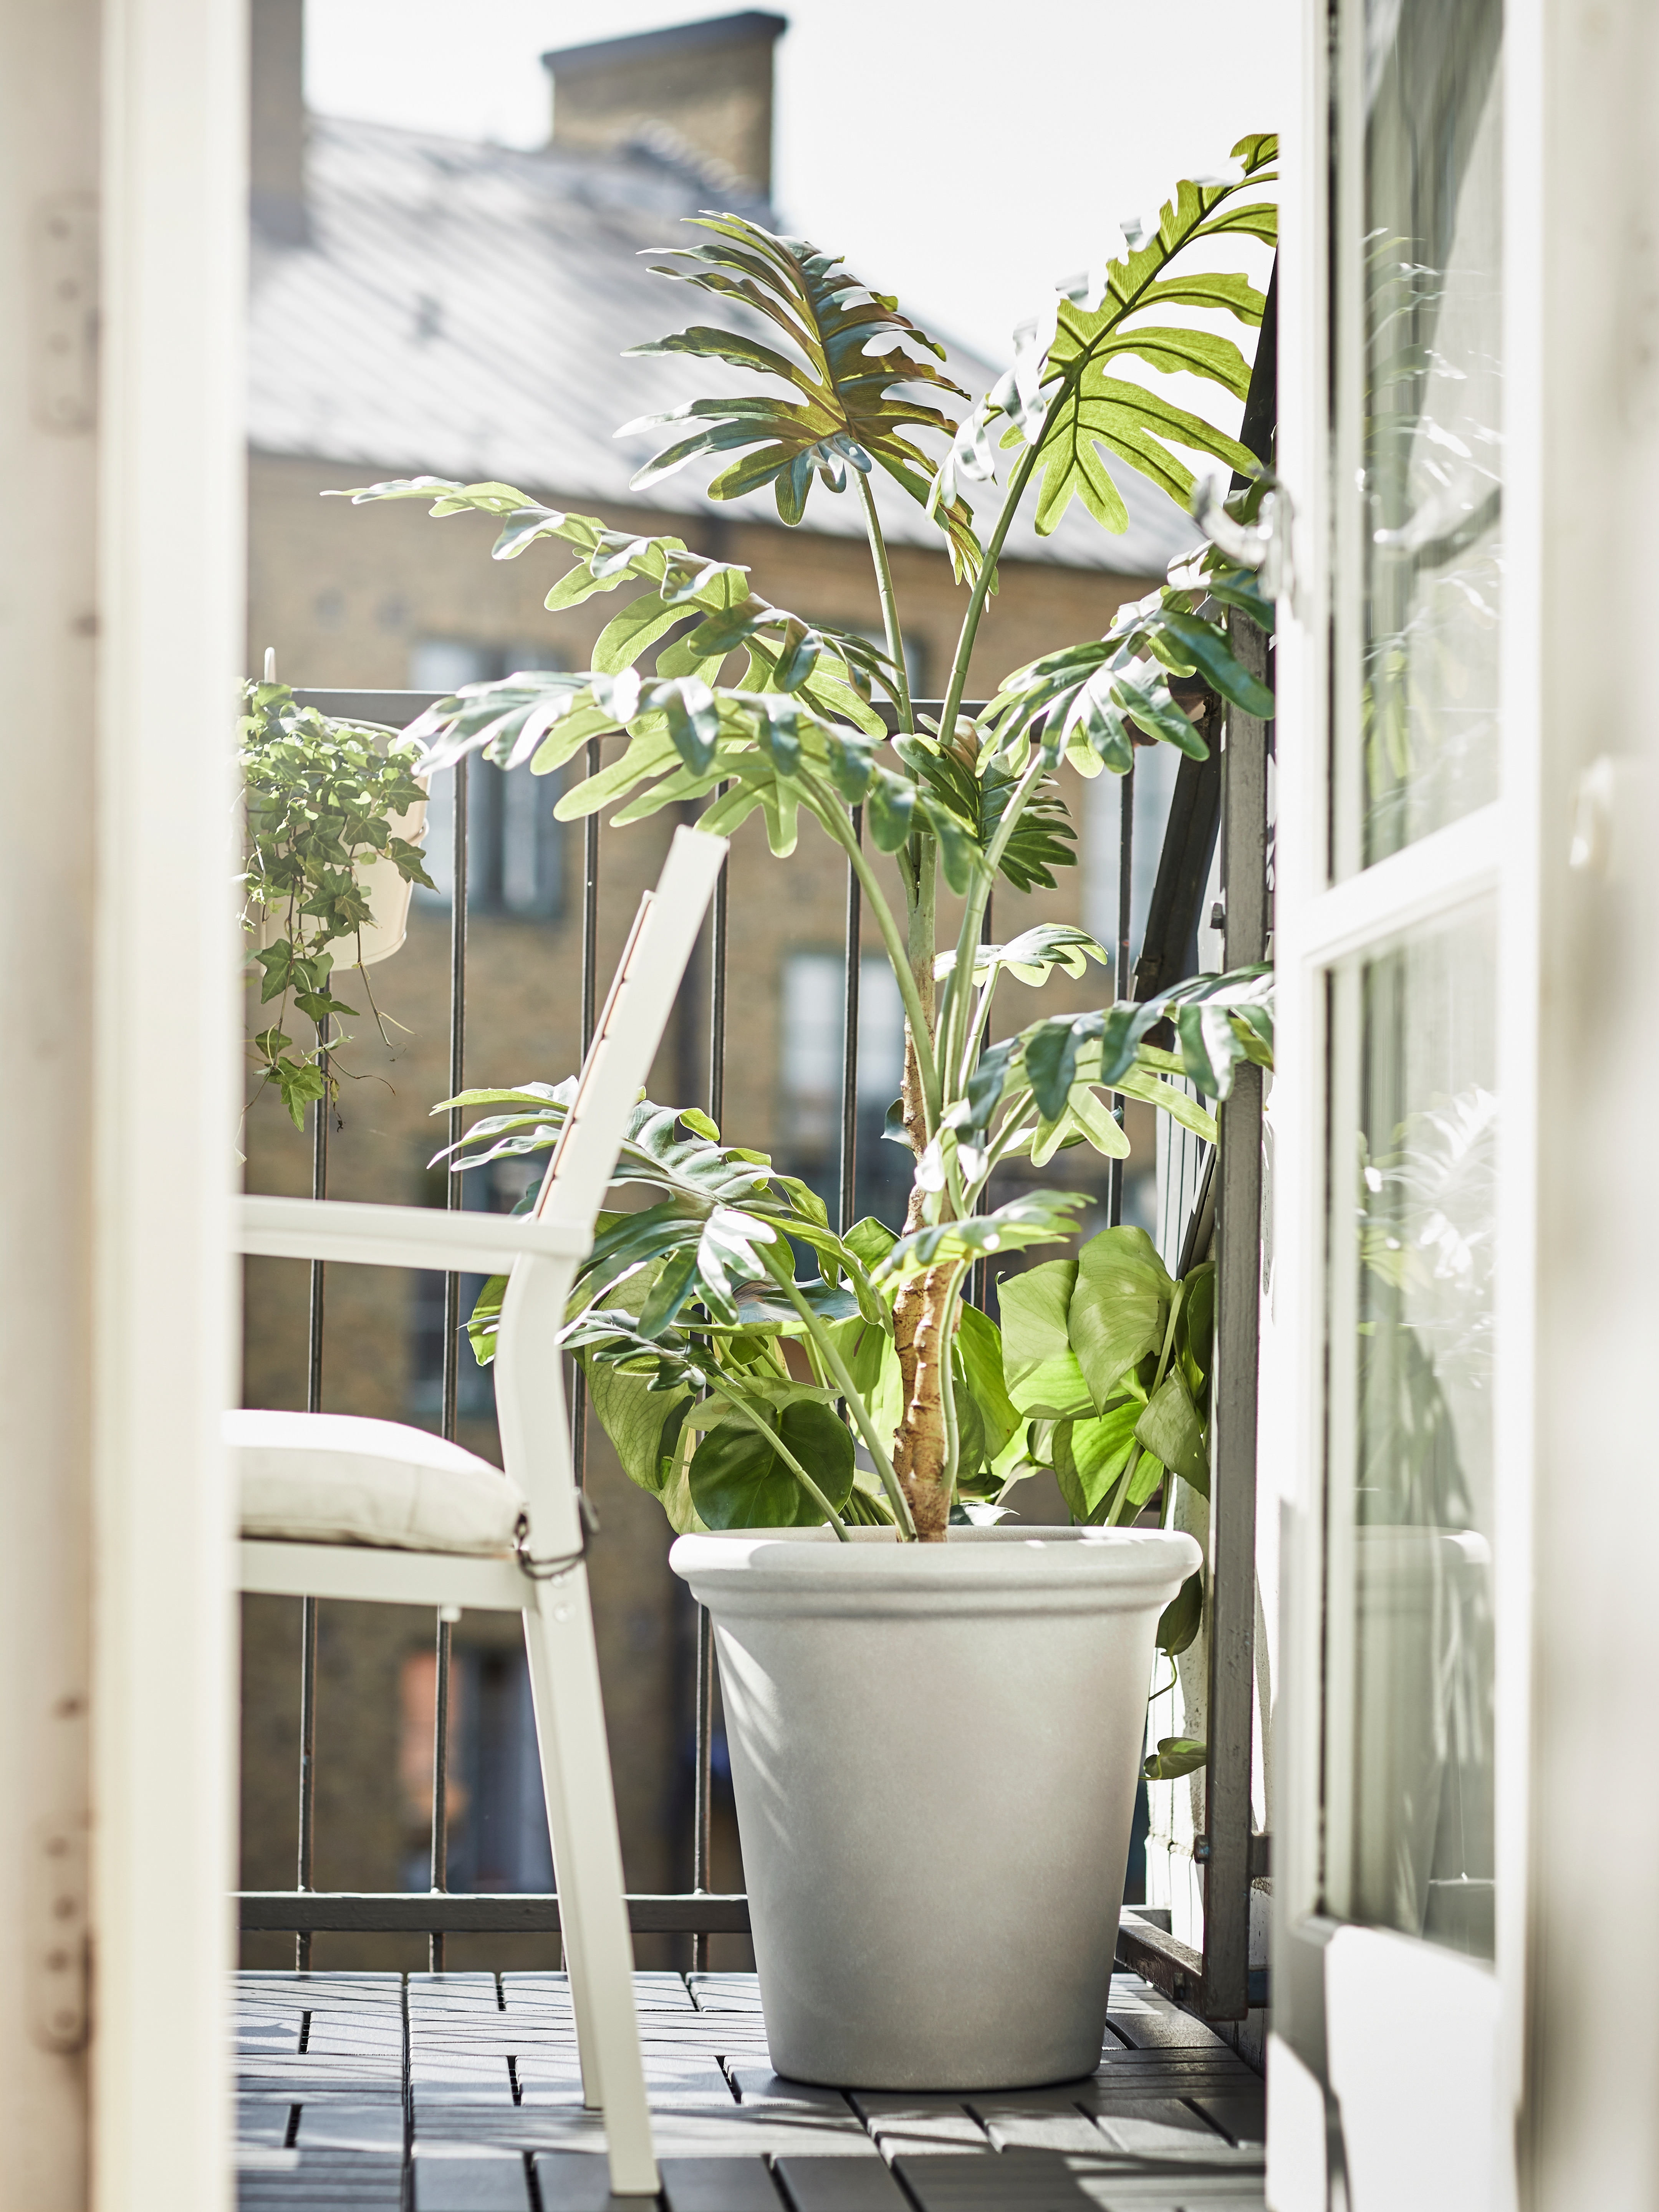 Sun lit balcony with a CHILIPEPPAR plant pot containing a tall plant, next to a white chair.